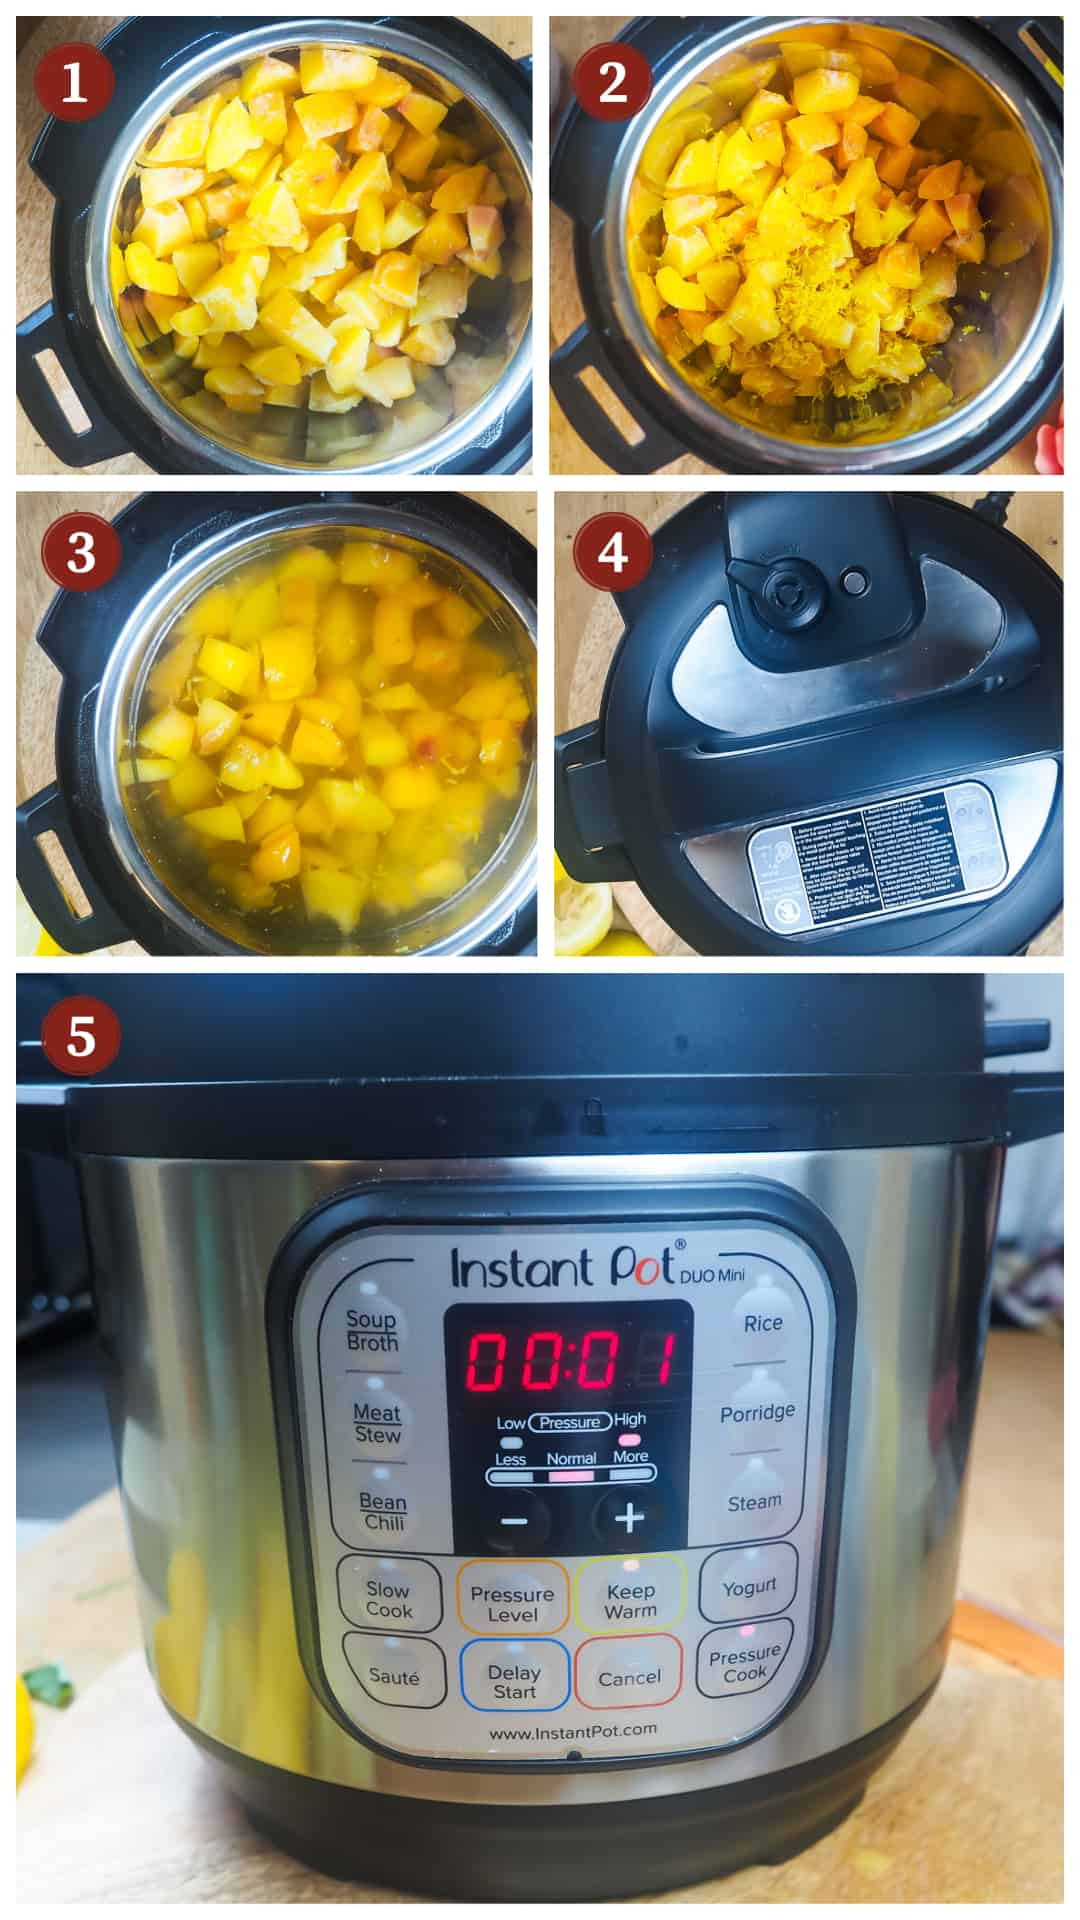 A collage of images showing the process of making peach lemonade in an Instant Pot, steps 1 - 5.